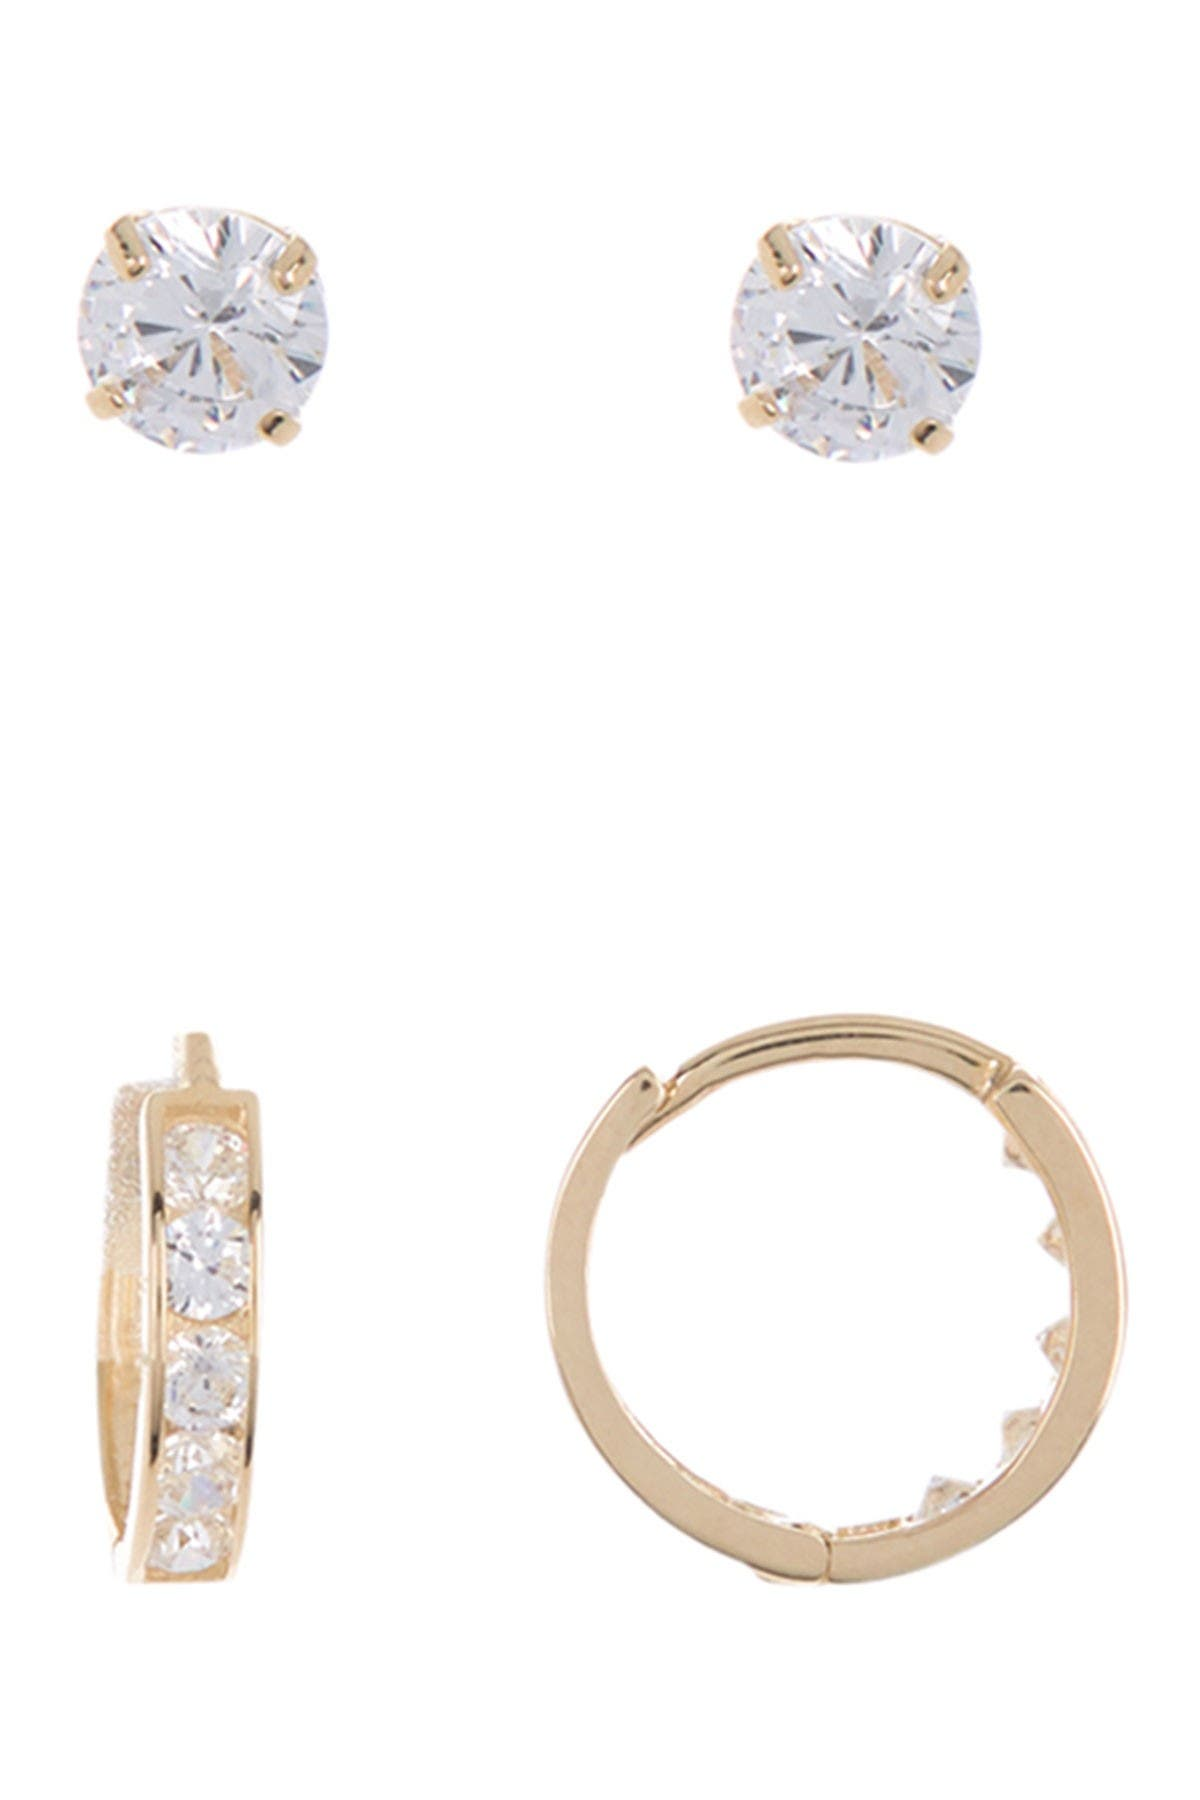 Image of Candela 14K Gold Hoop & Stud Earrings Set